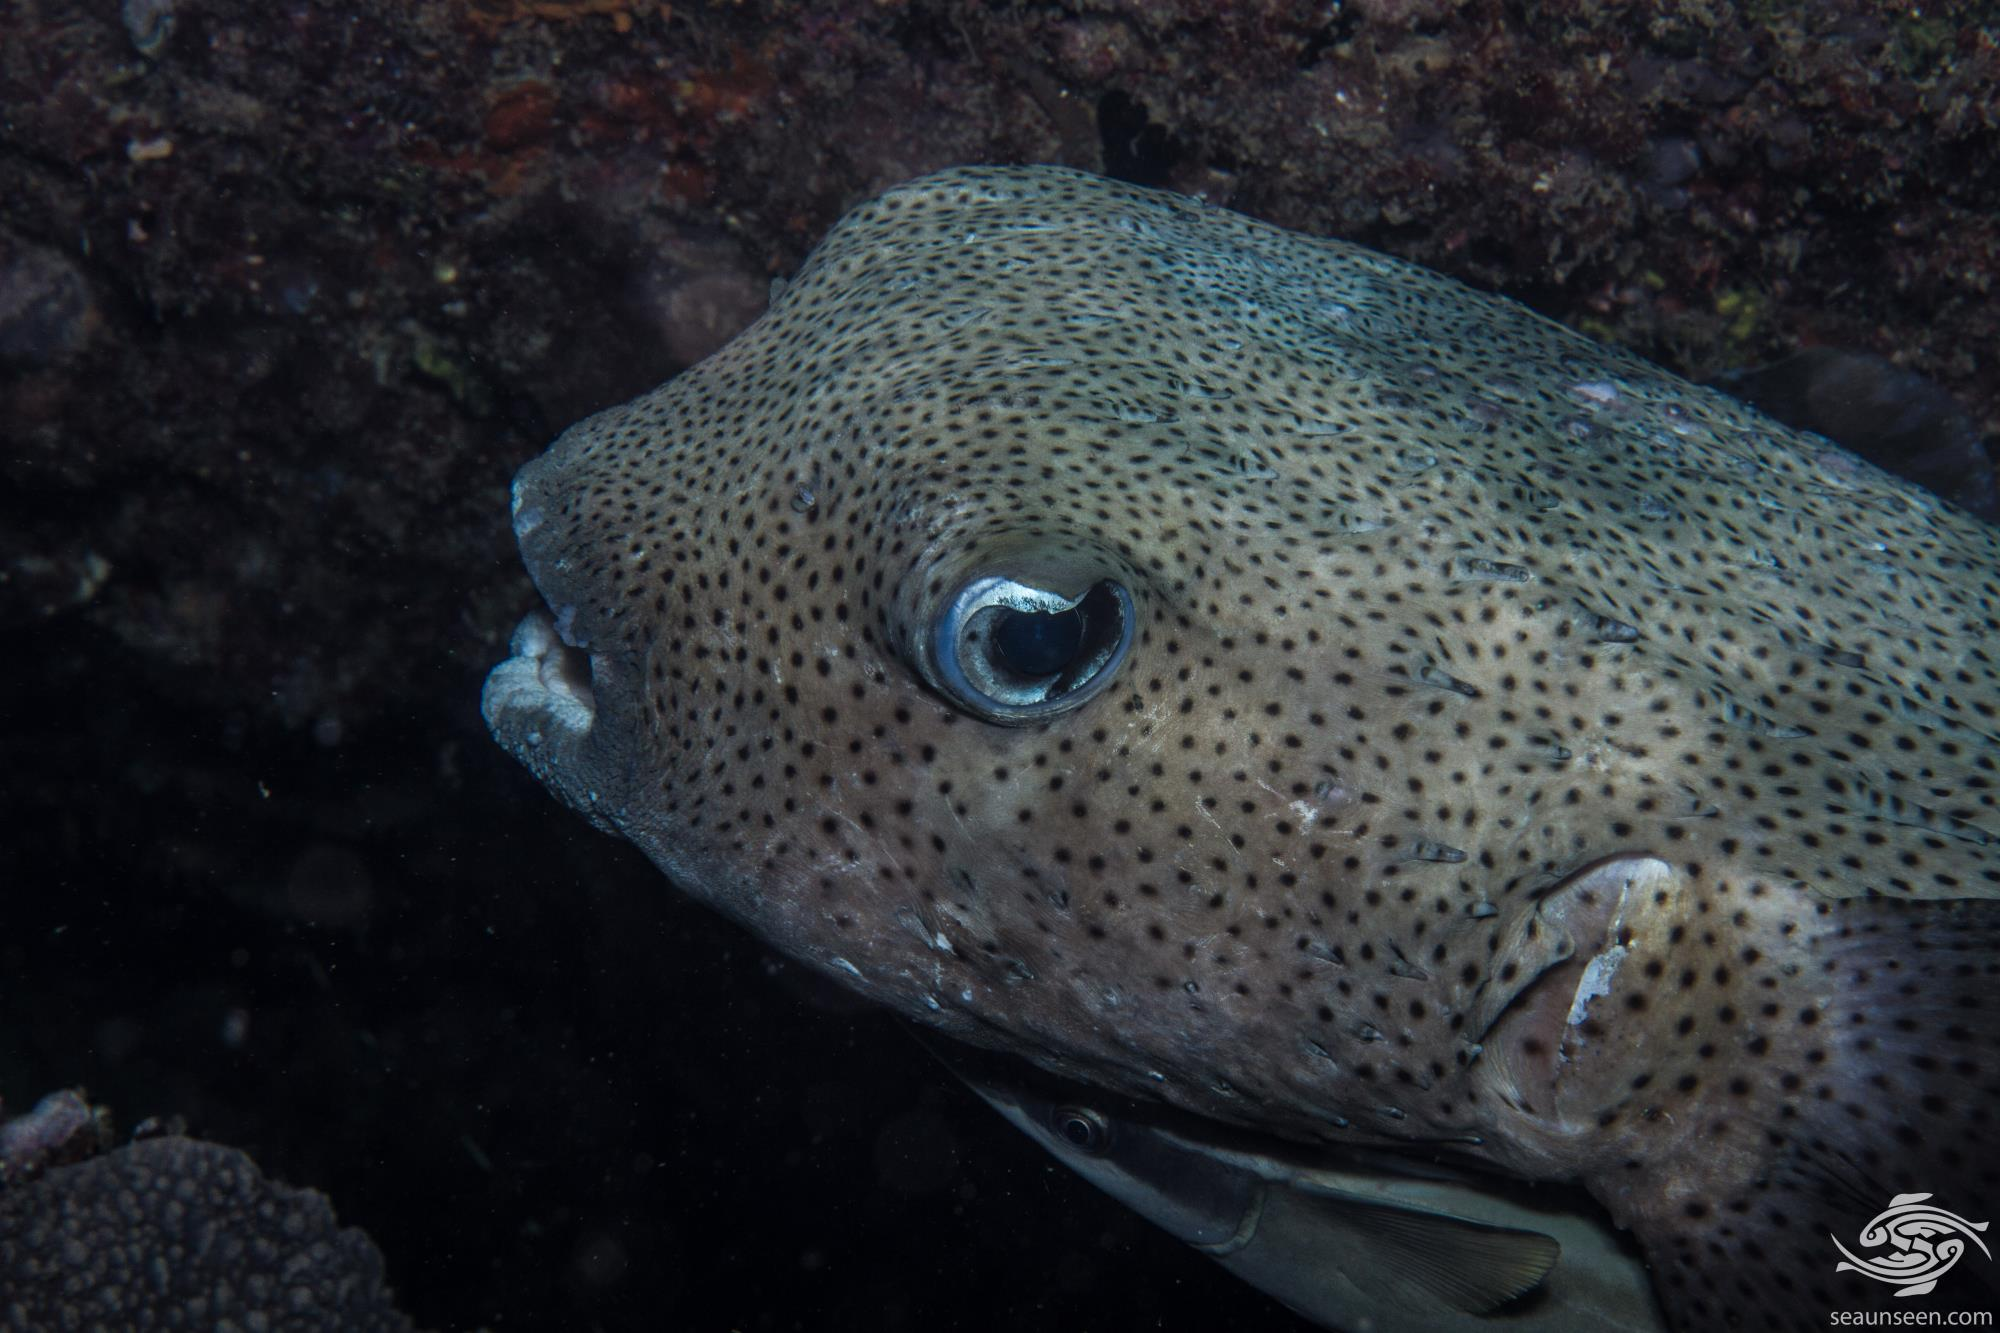 Spot-fin porcupinefish (Diodon hystrix) is also known as Spotted porcupinefish, Black-spotted porcupinefish or simply as the Porcupinefish